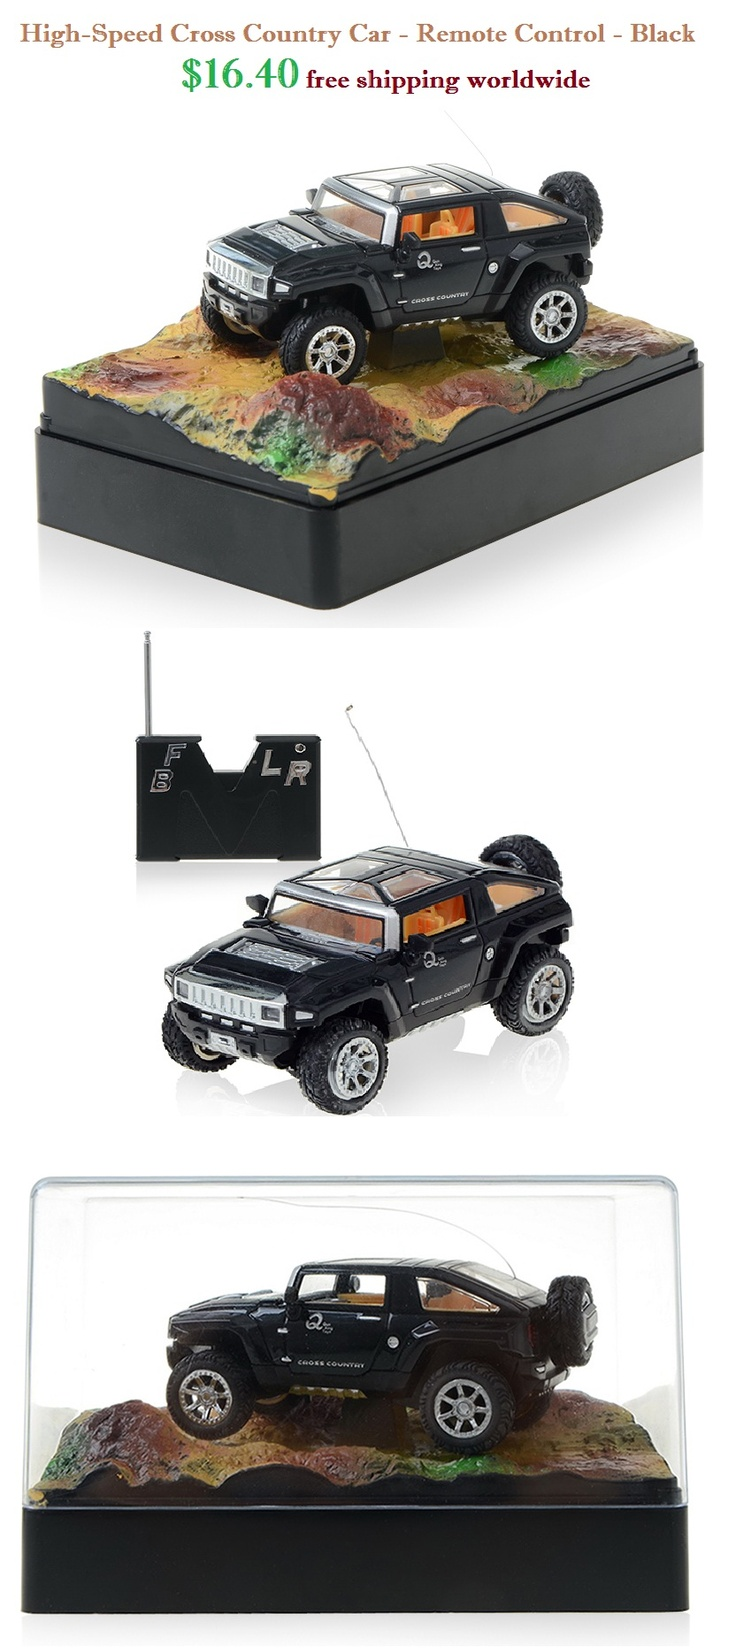 High-Speed Cross Car - Remote Control - Black Off Road Car #speed #cross #car #remote #control #offroad $16.40